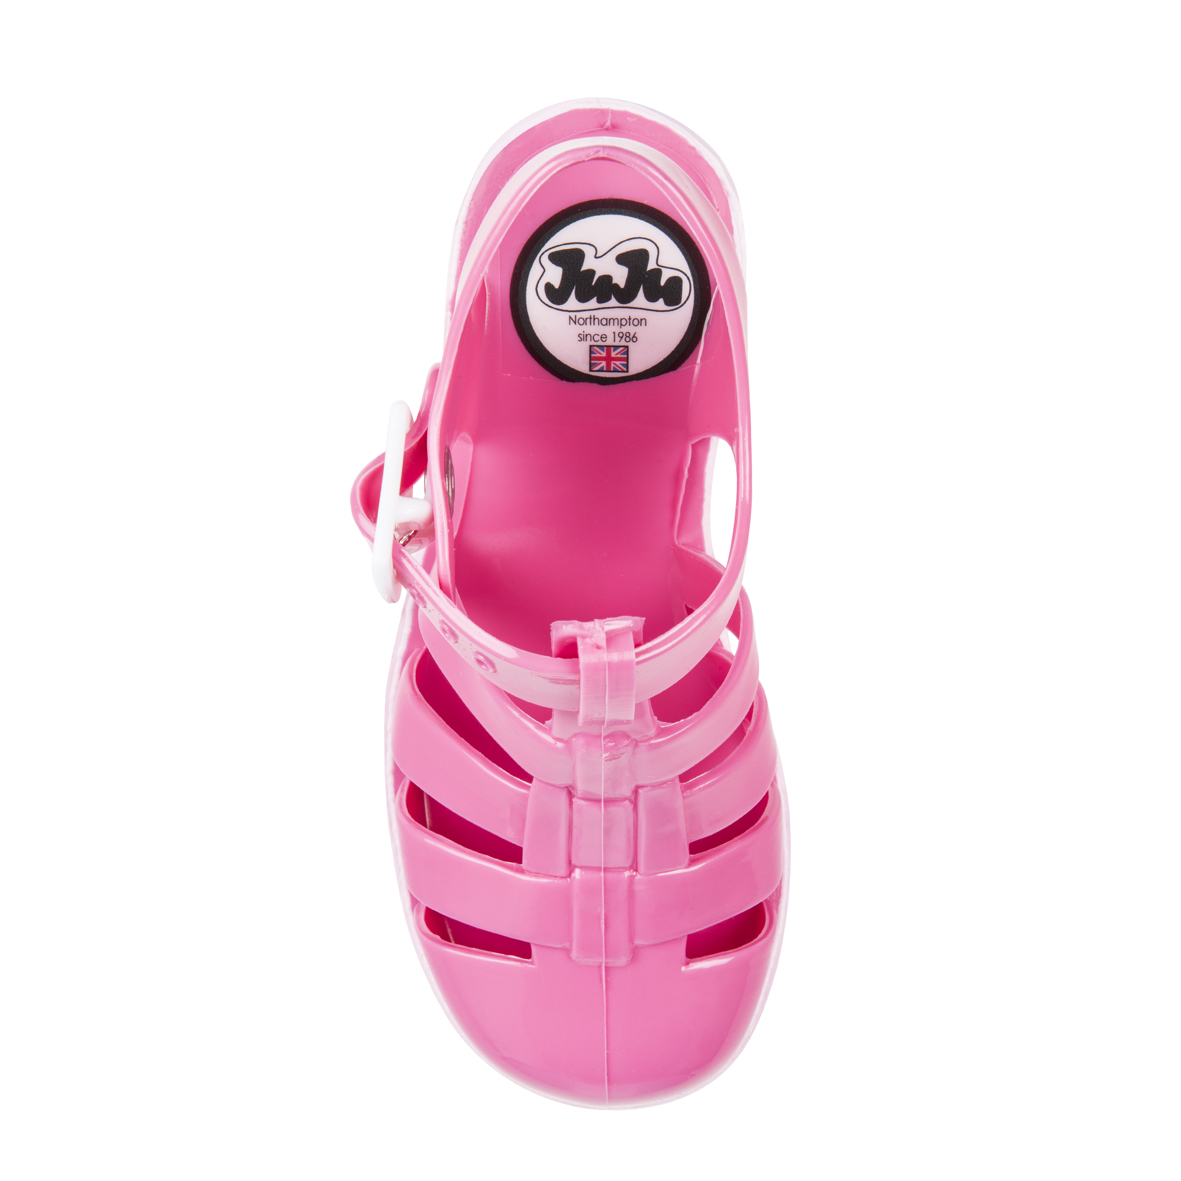 BABE JNR PARTY PINK.BABY PINK LR #2.jpg